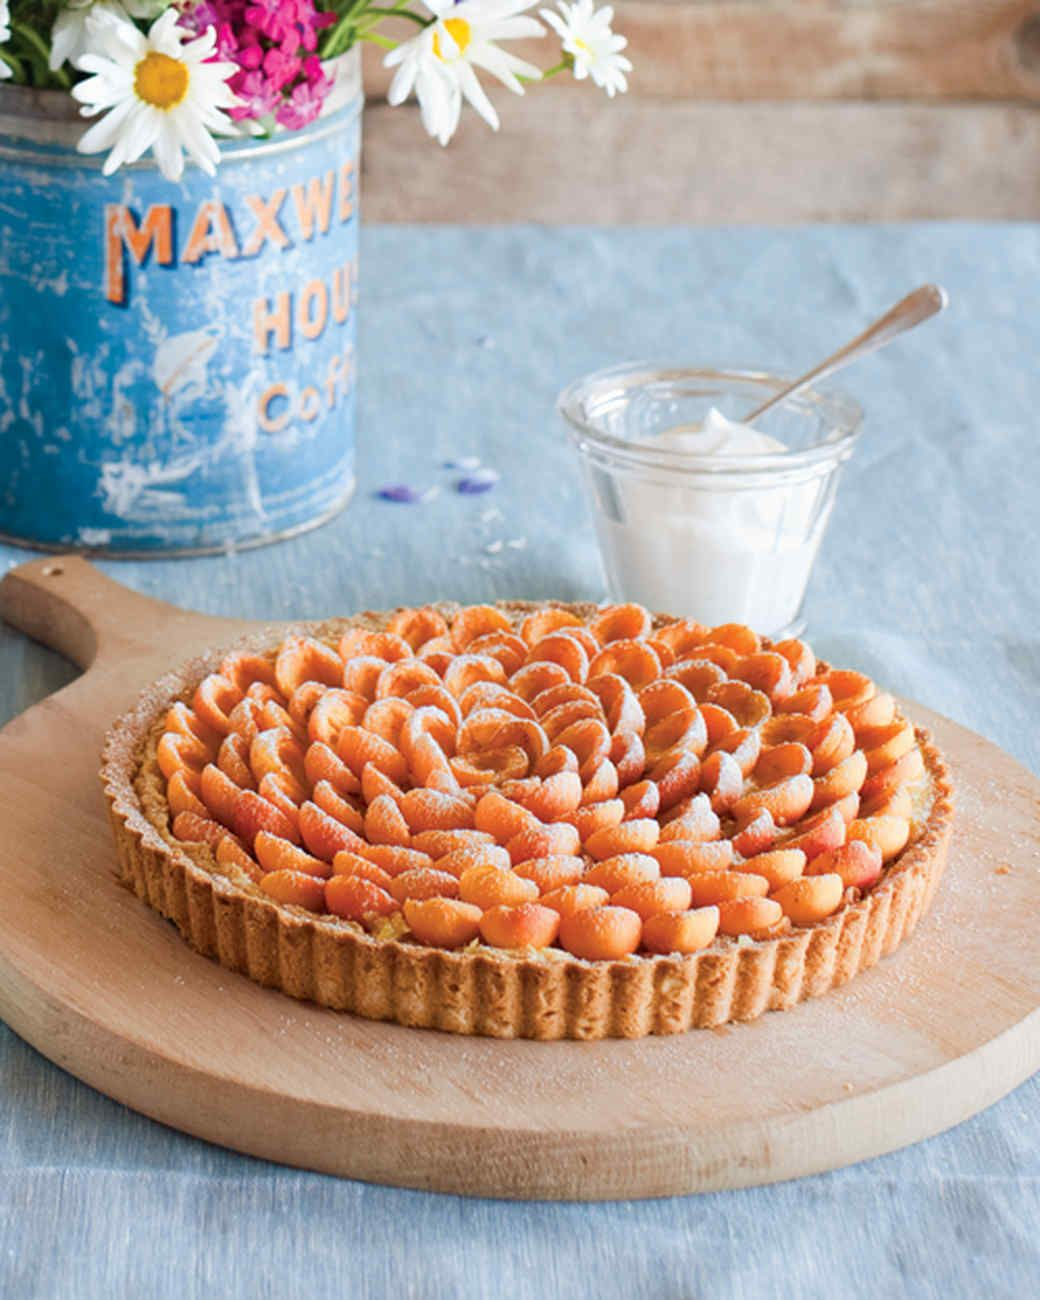 Almond-Apricot Tart with Whipped Cream | Martha Stewart Living - Set up a sweet arrangement on the dessert table with this flower-inspired almond tart topped with rings of fresh apricots.